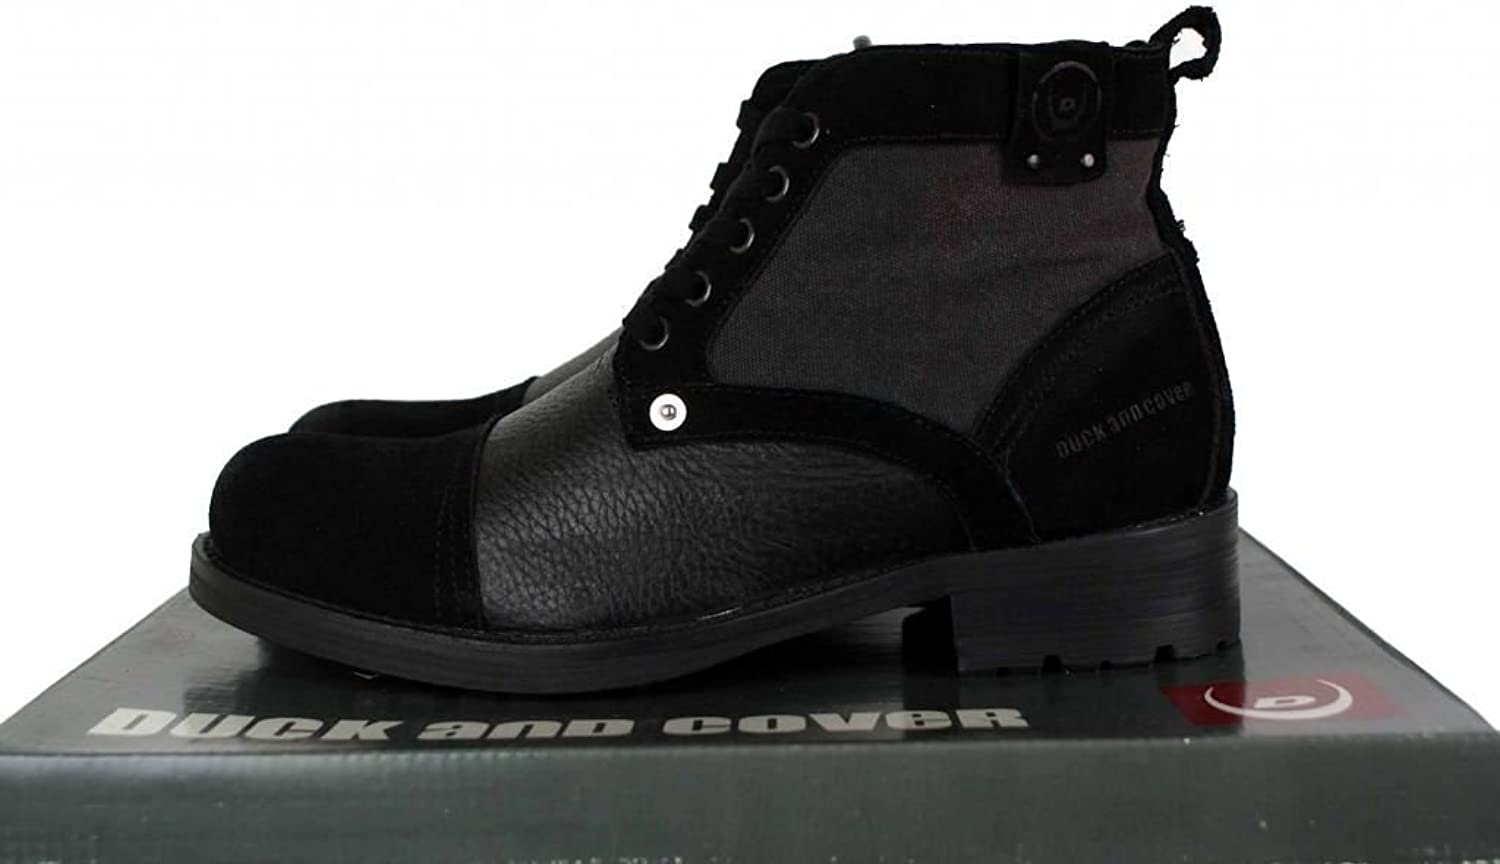 Duck and Cover Allingham Leather and Suede Ankle Boots DAC19135 Black UK 9 - EU 43